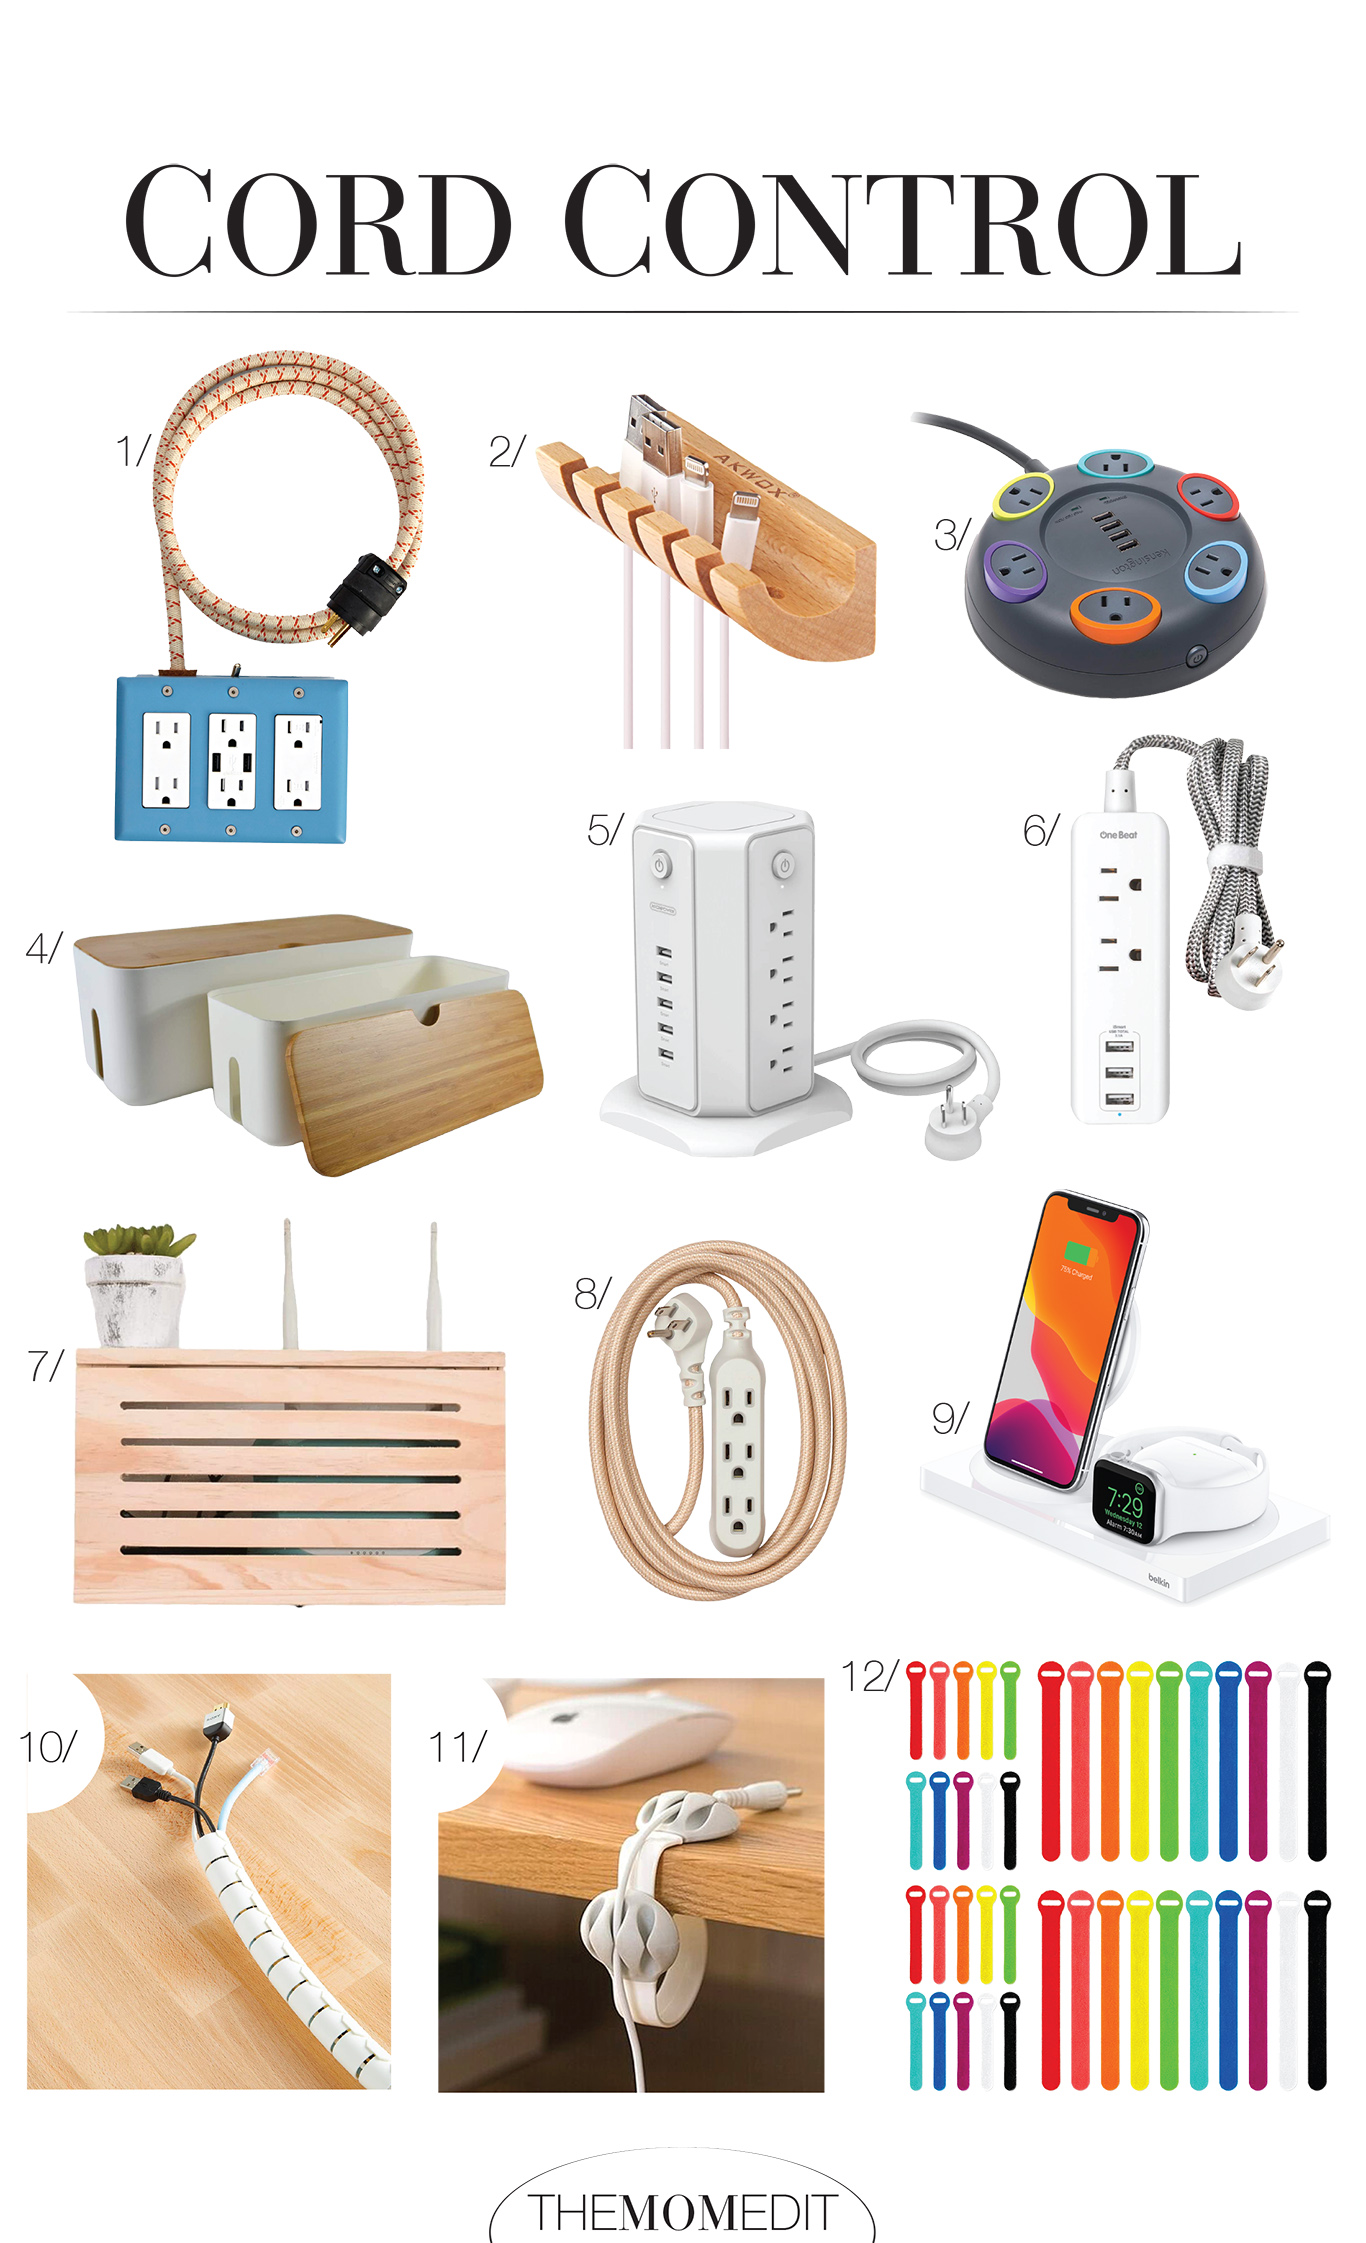 We're plugging away at organizing an out-of-control power cord situation in our home. Now we've got 12 ways to hide computer cord clutter.